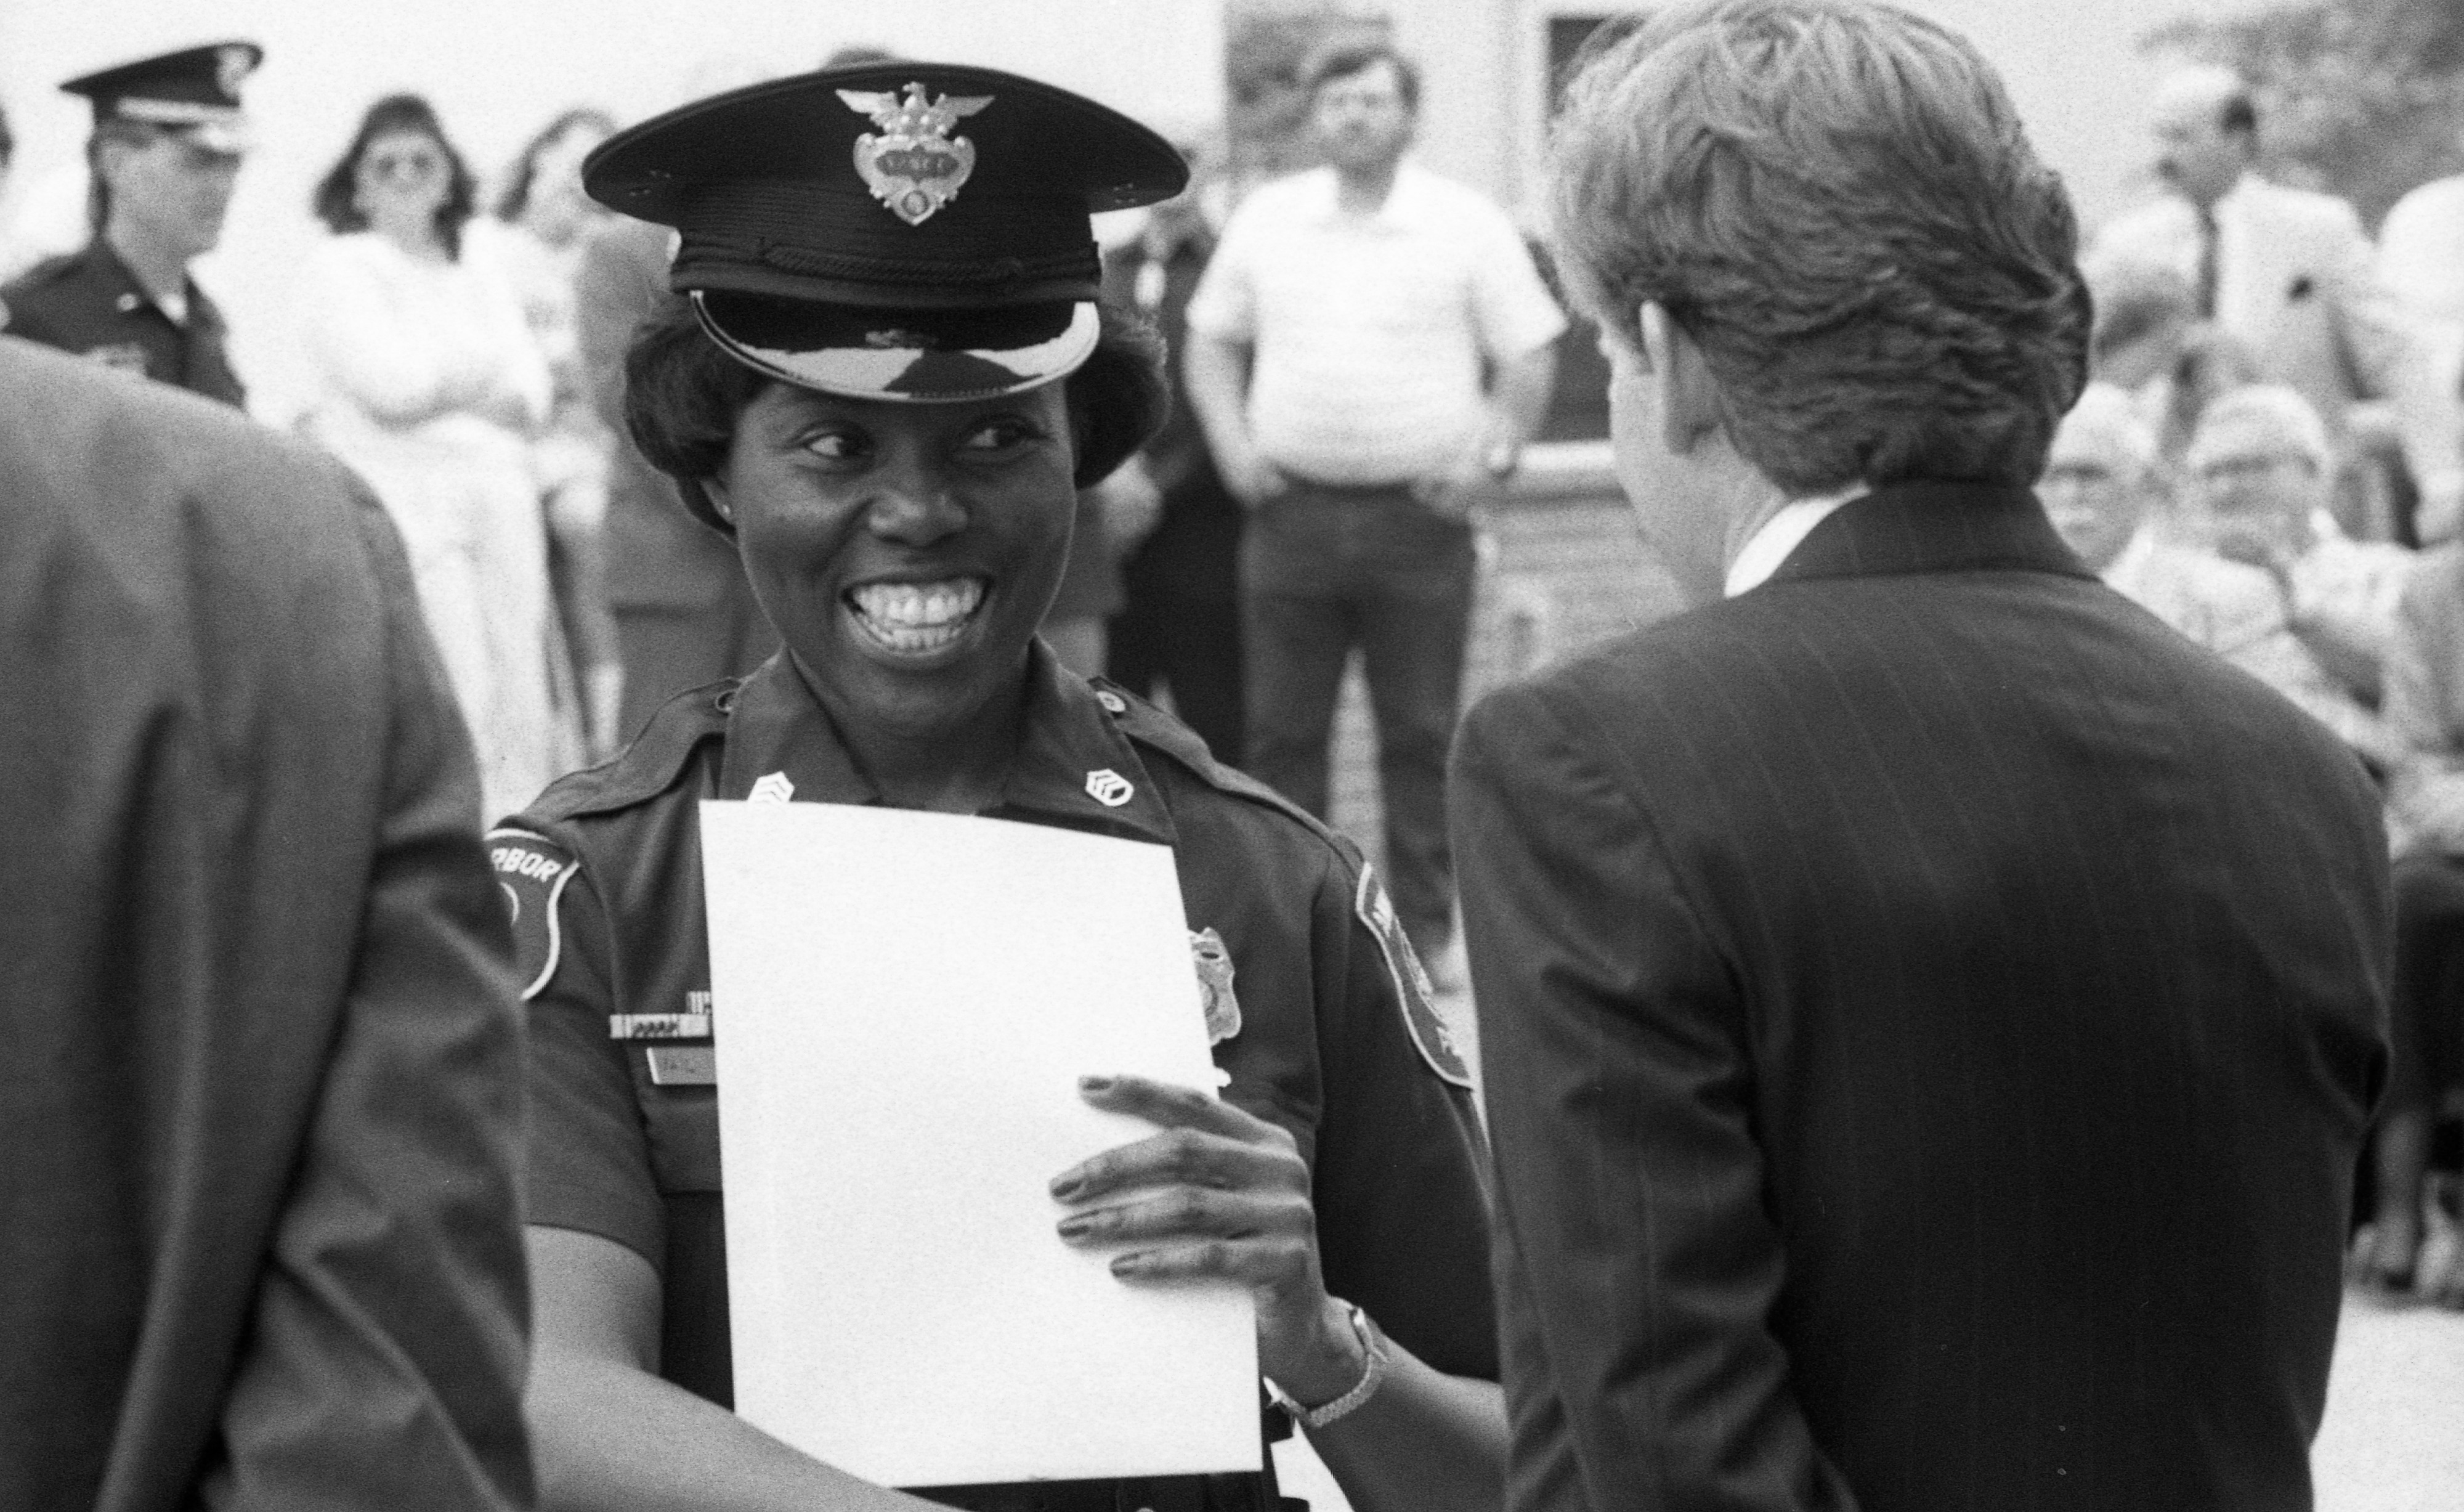 Proud Recipient at Ann Arbor Police Department Community Service Awards Ceremony, June 1990 image